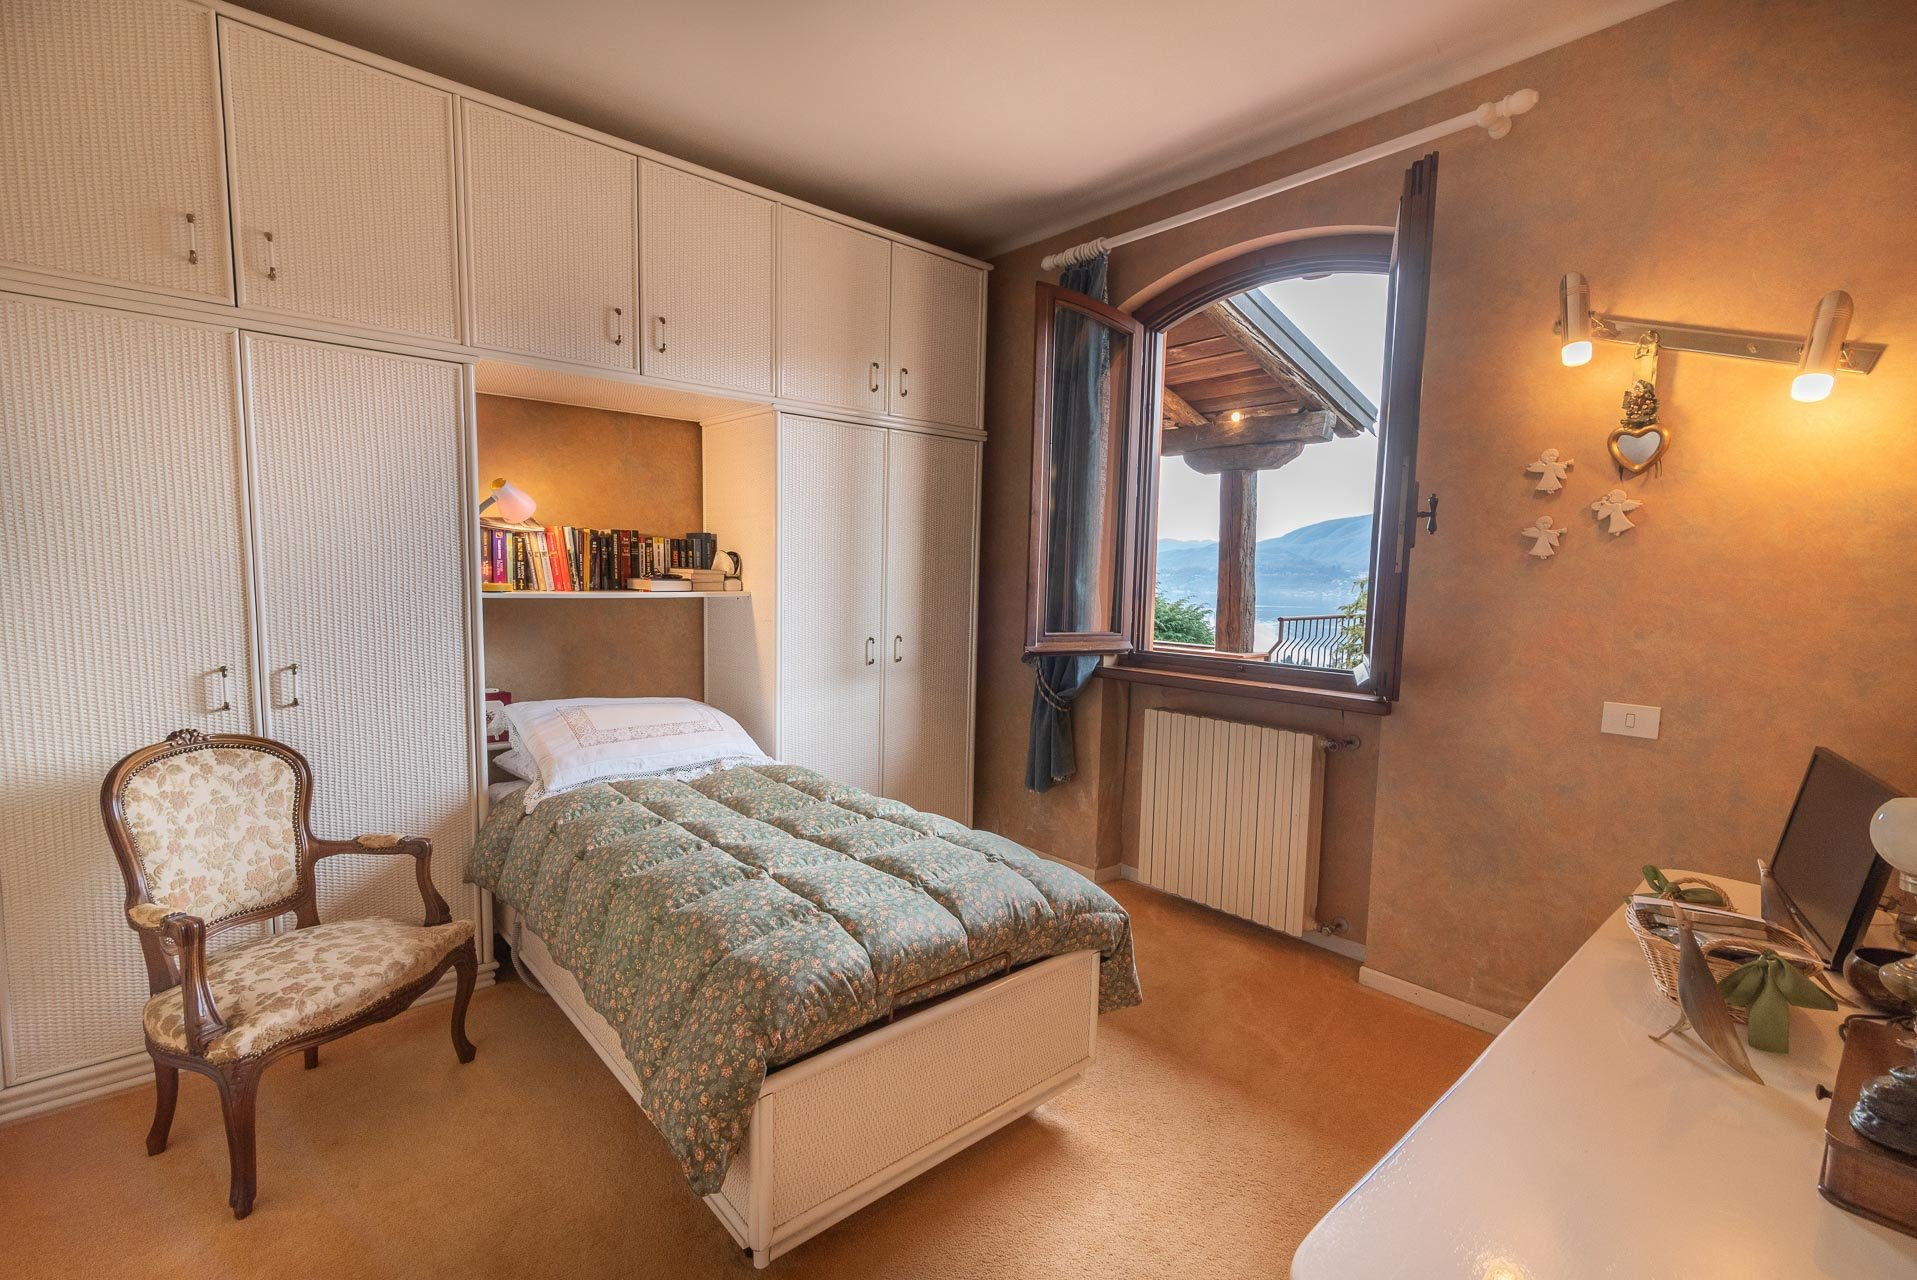 Elegant villa for sale in Pettenasco on Lake Orta - small bedroom